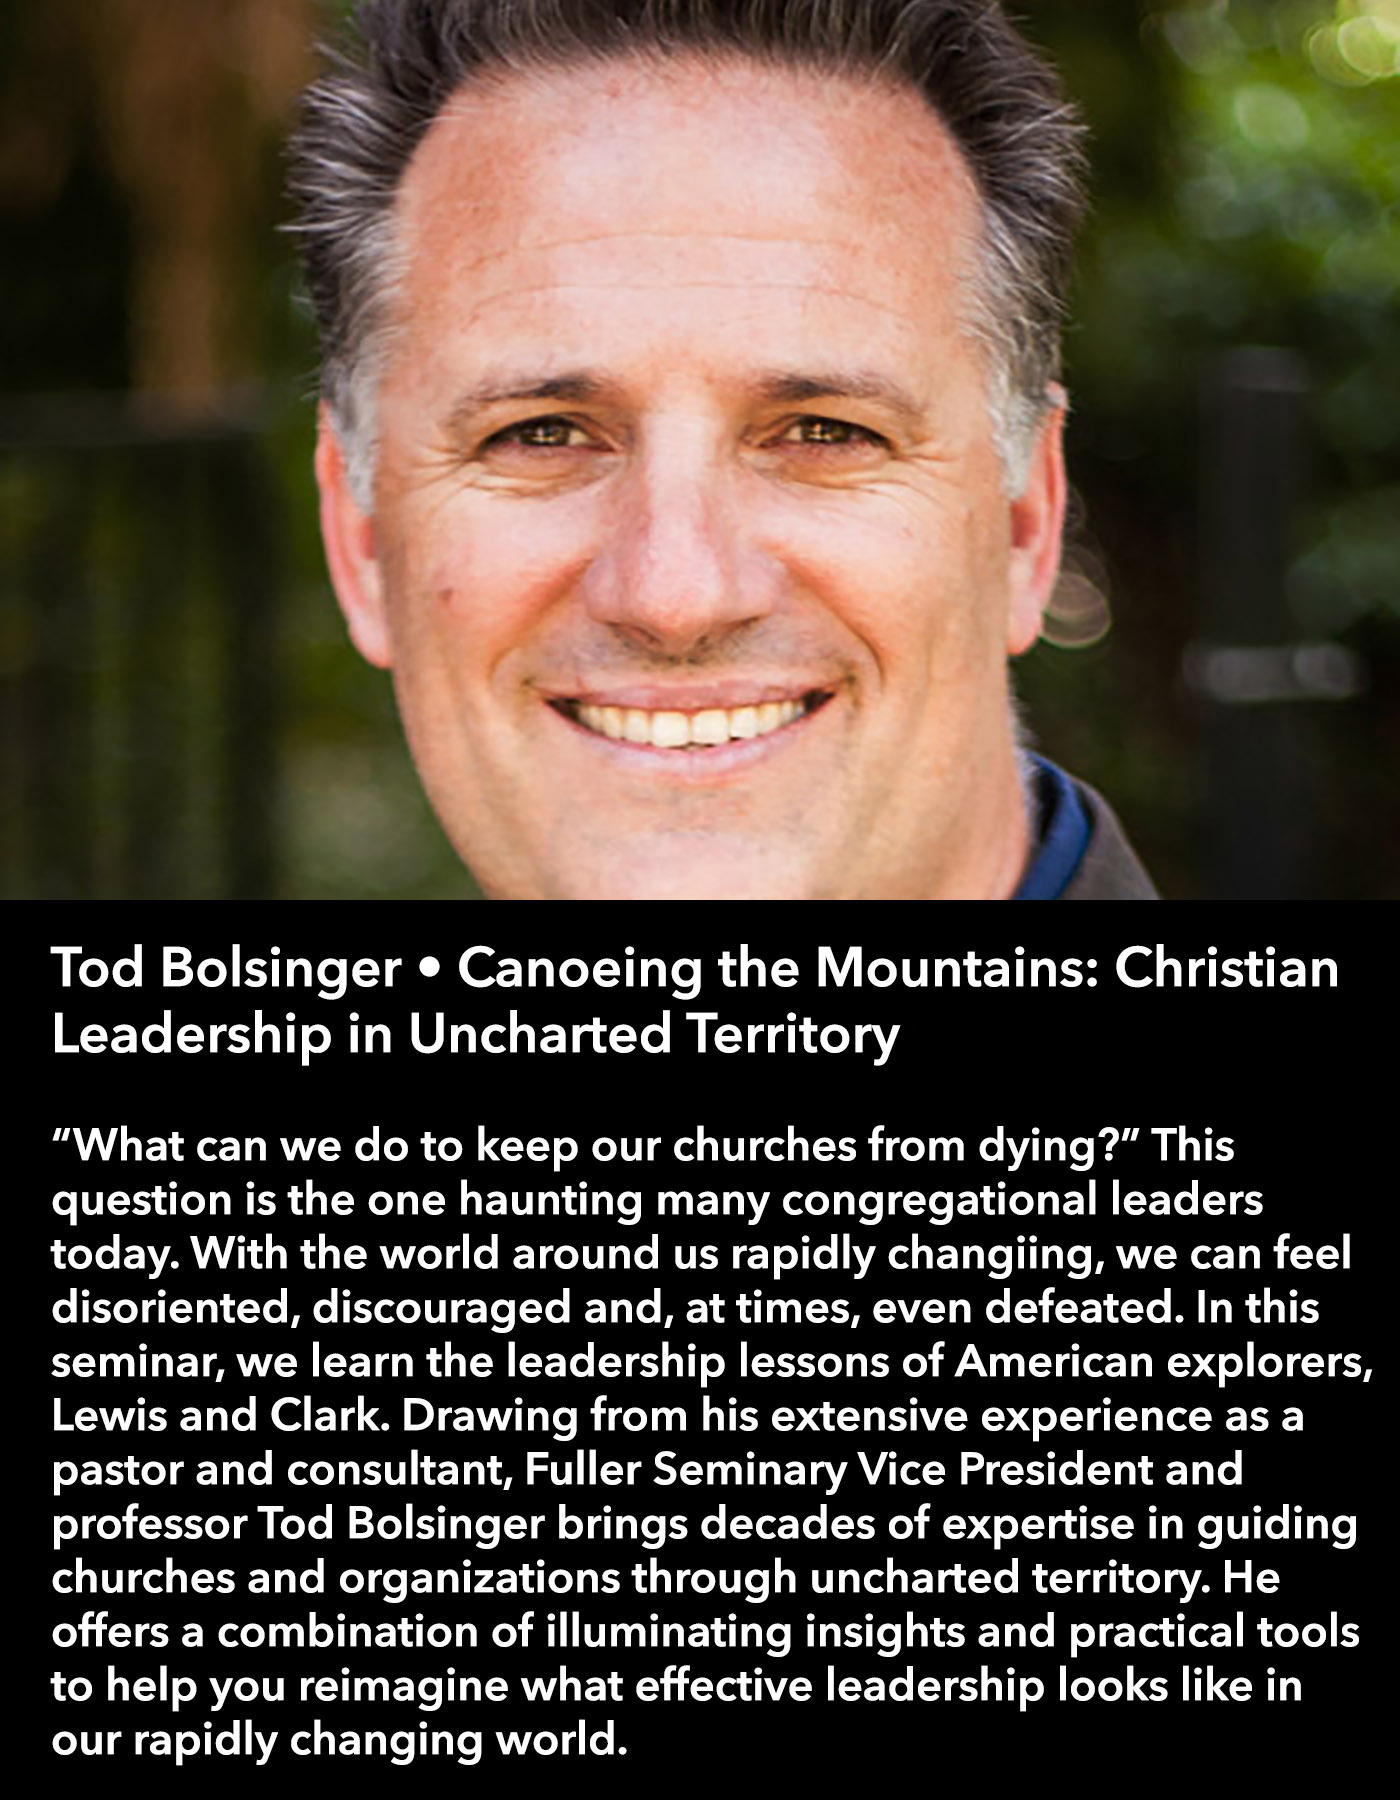 Tod Bolsinger • Canoeing the Mountains: Christian Leadership in Uncharted Territory  • Friday Morning, March 17 • 10:30 – 11:45 am